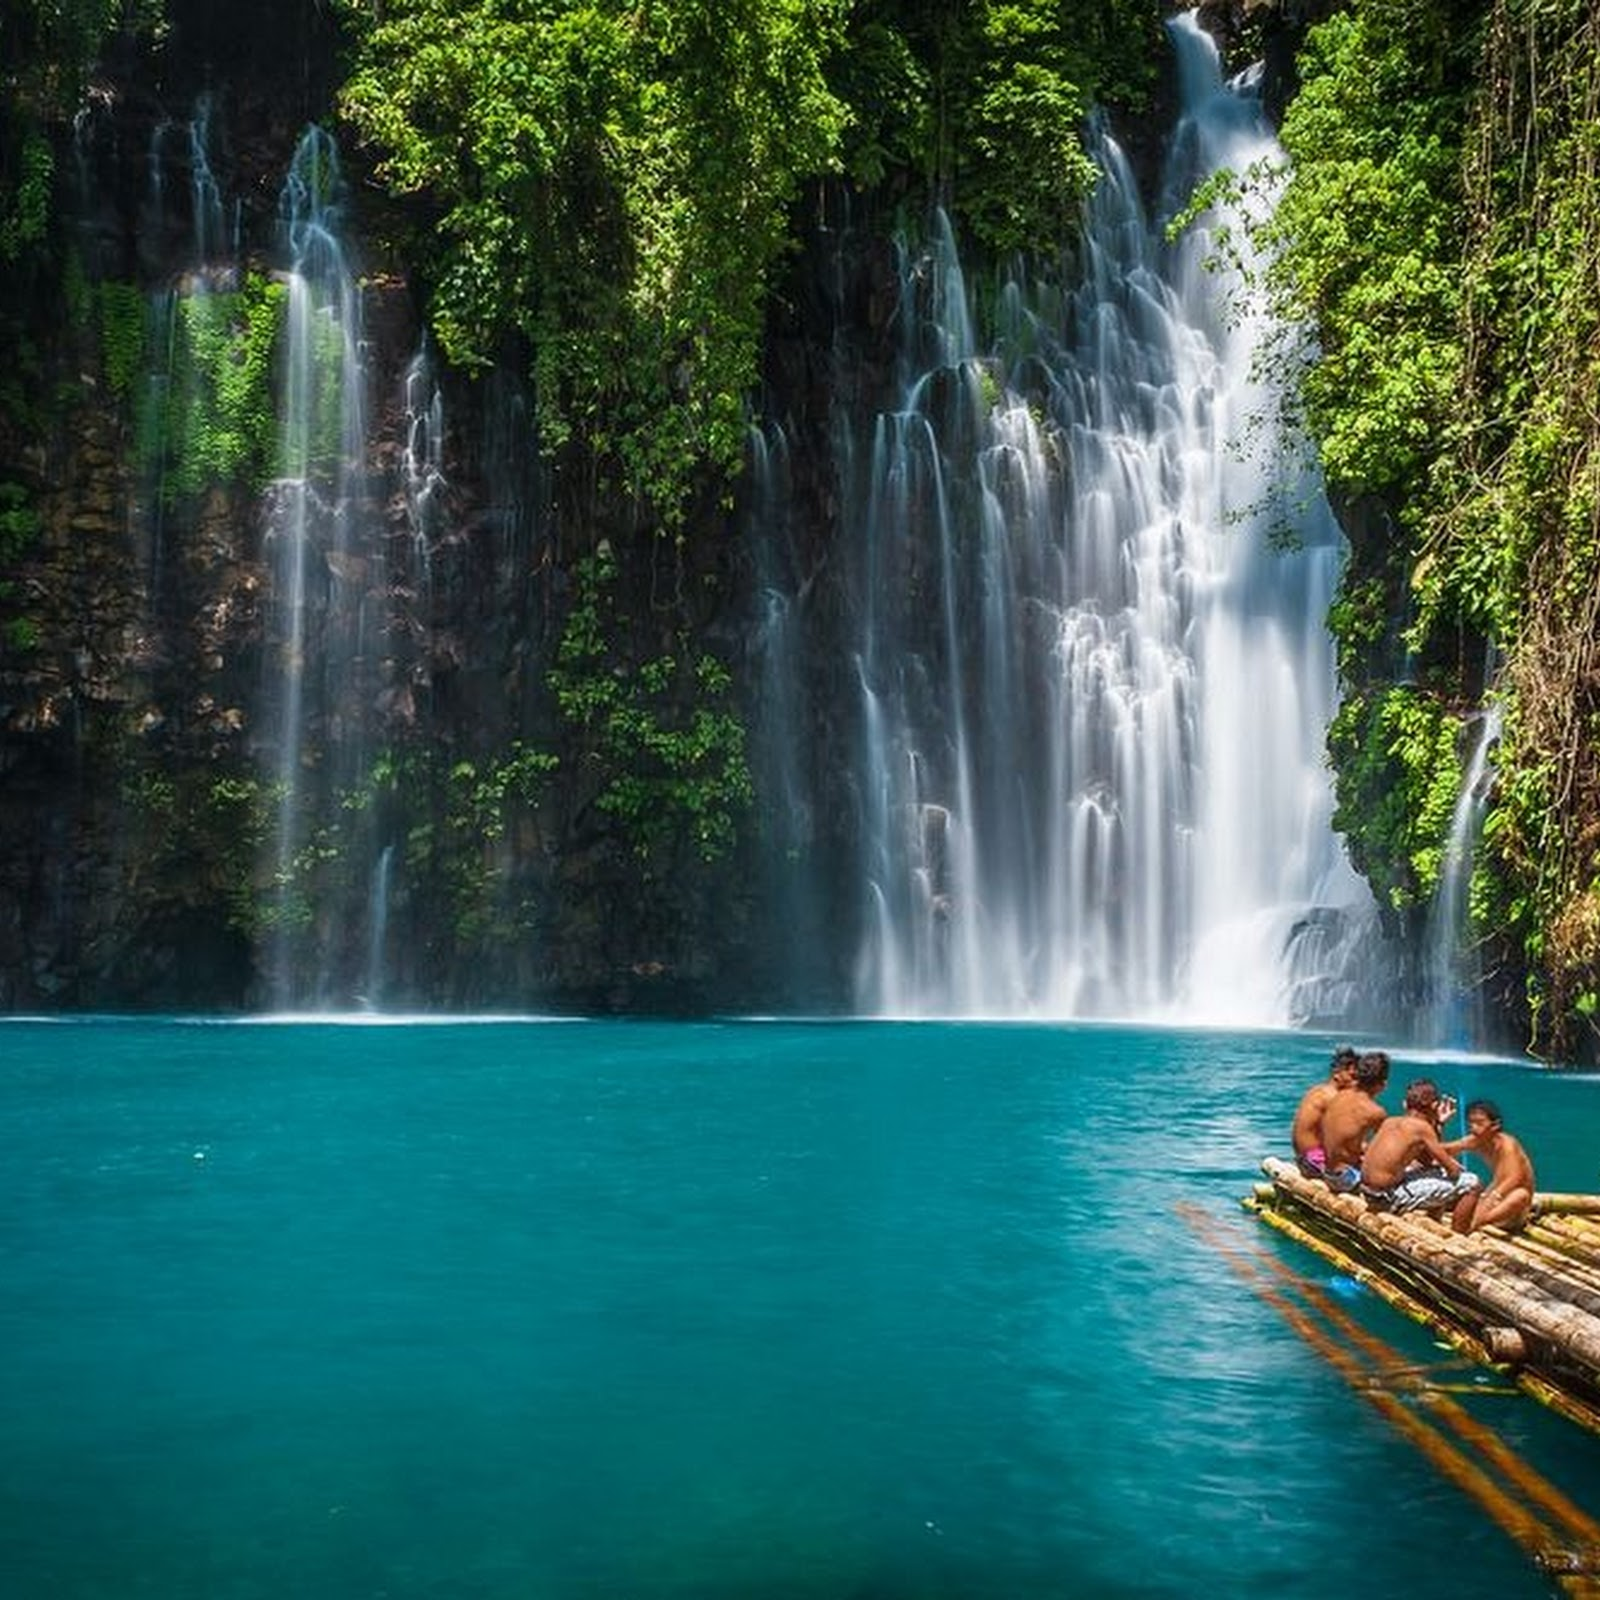 Iligan, The City of Majestic Waterfalls